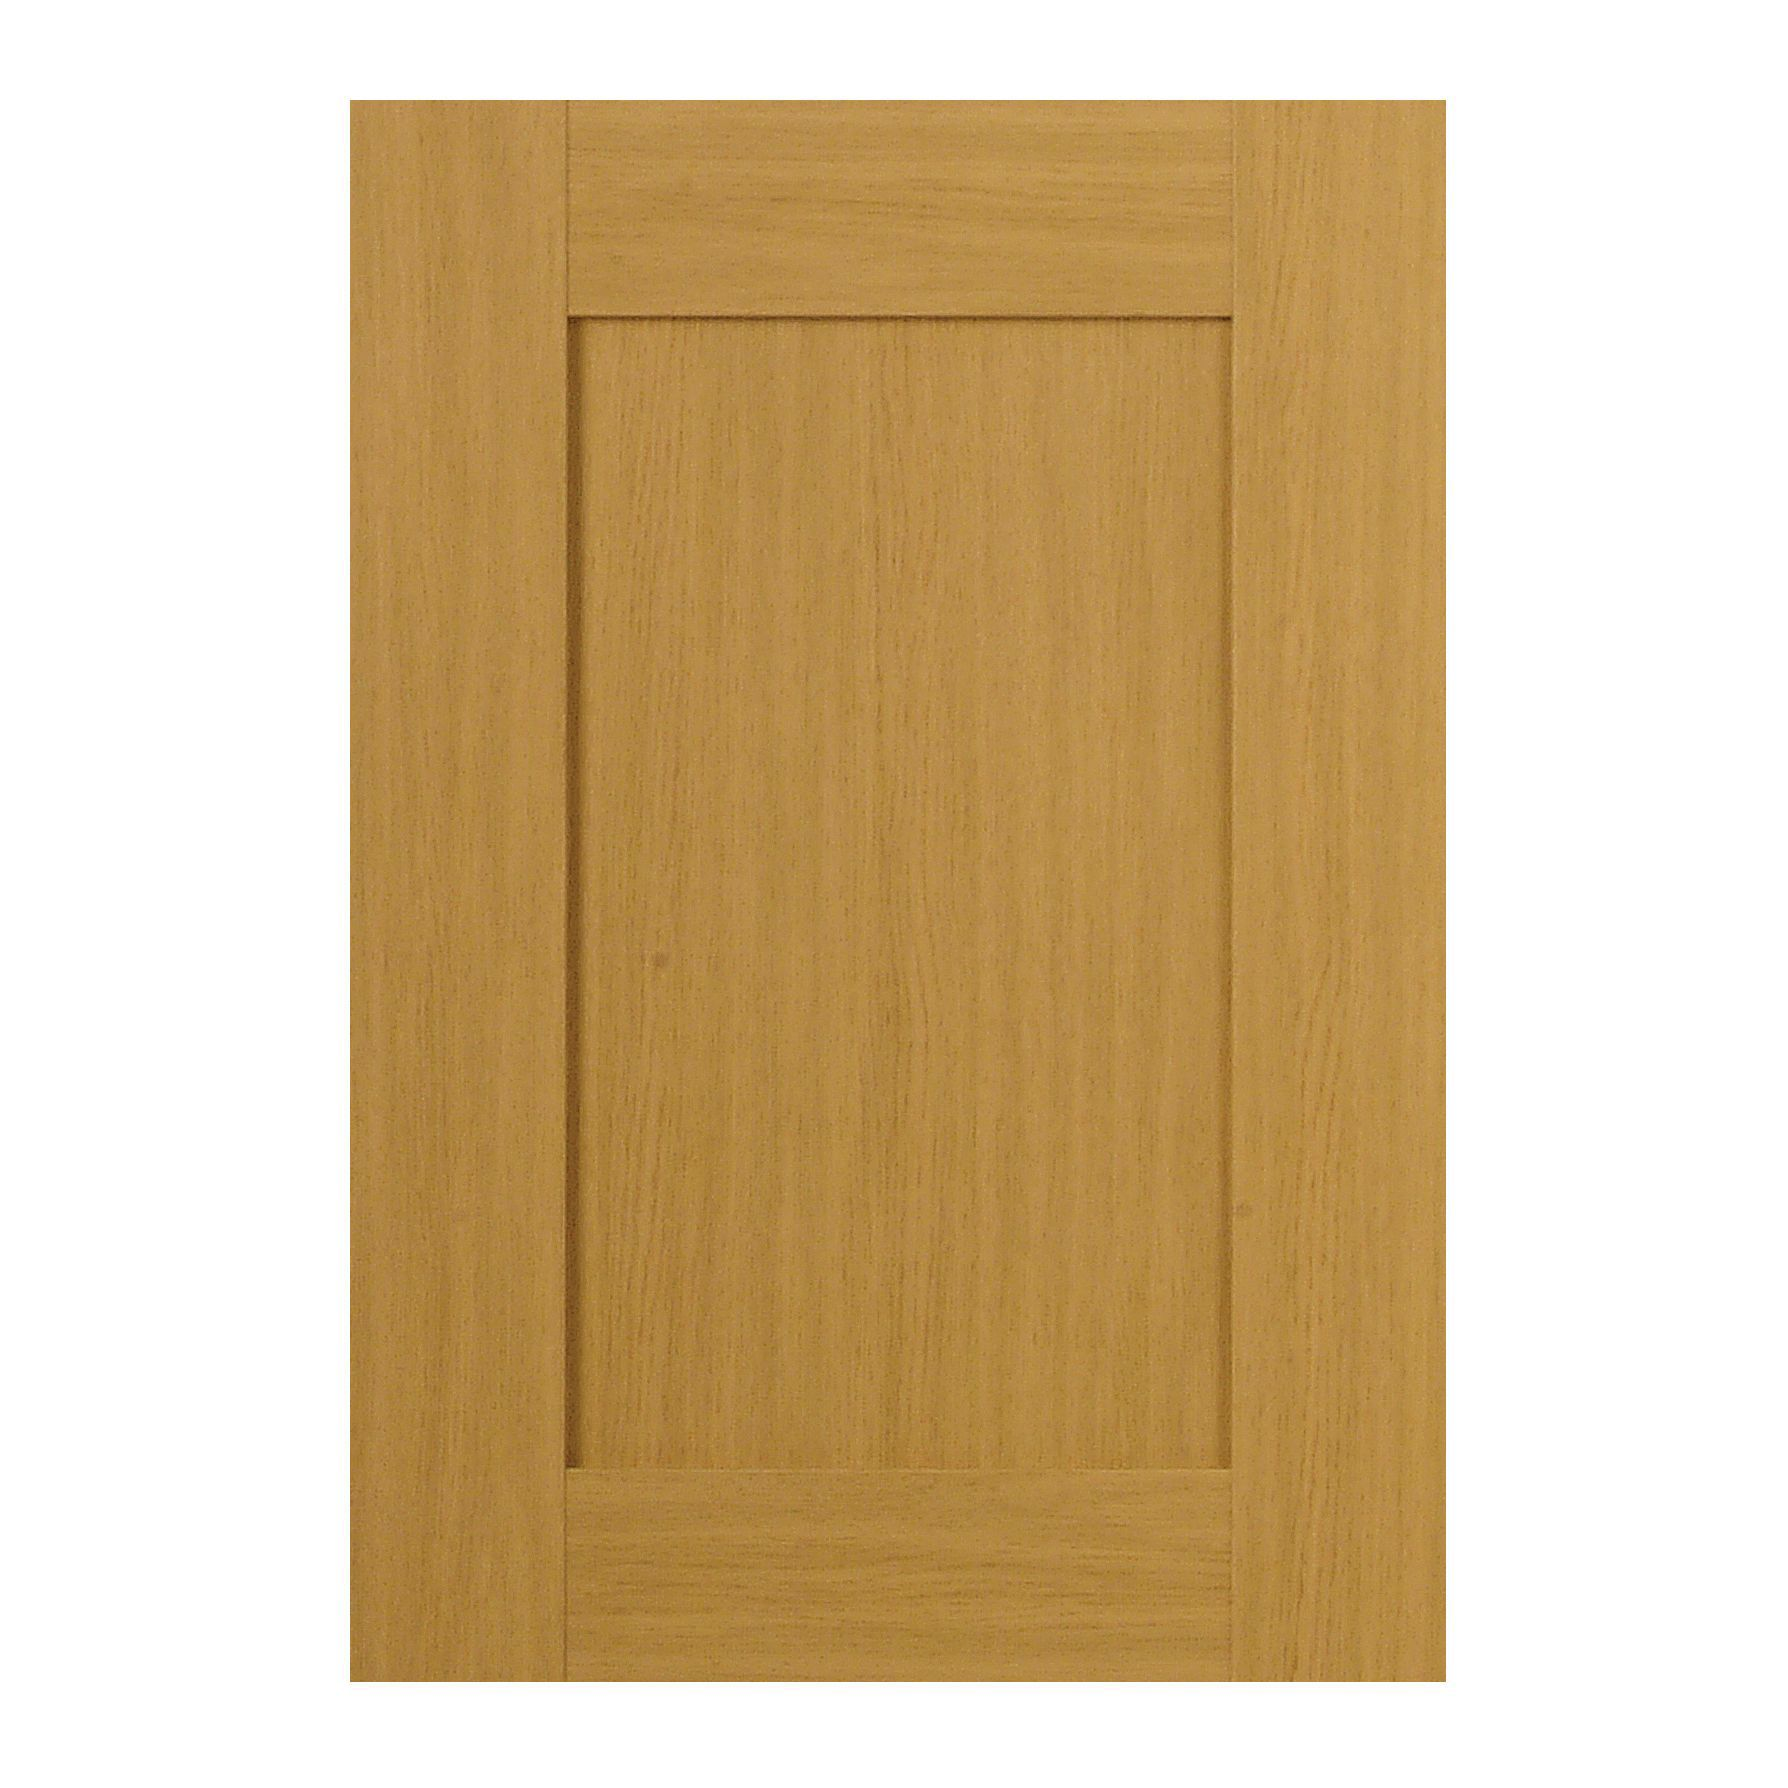 IT Kitchens Oak Style Shaker Full Height Door W500mm